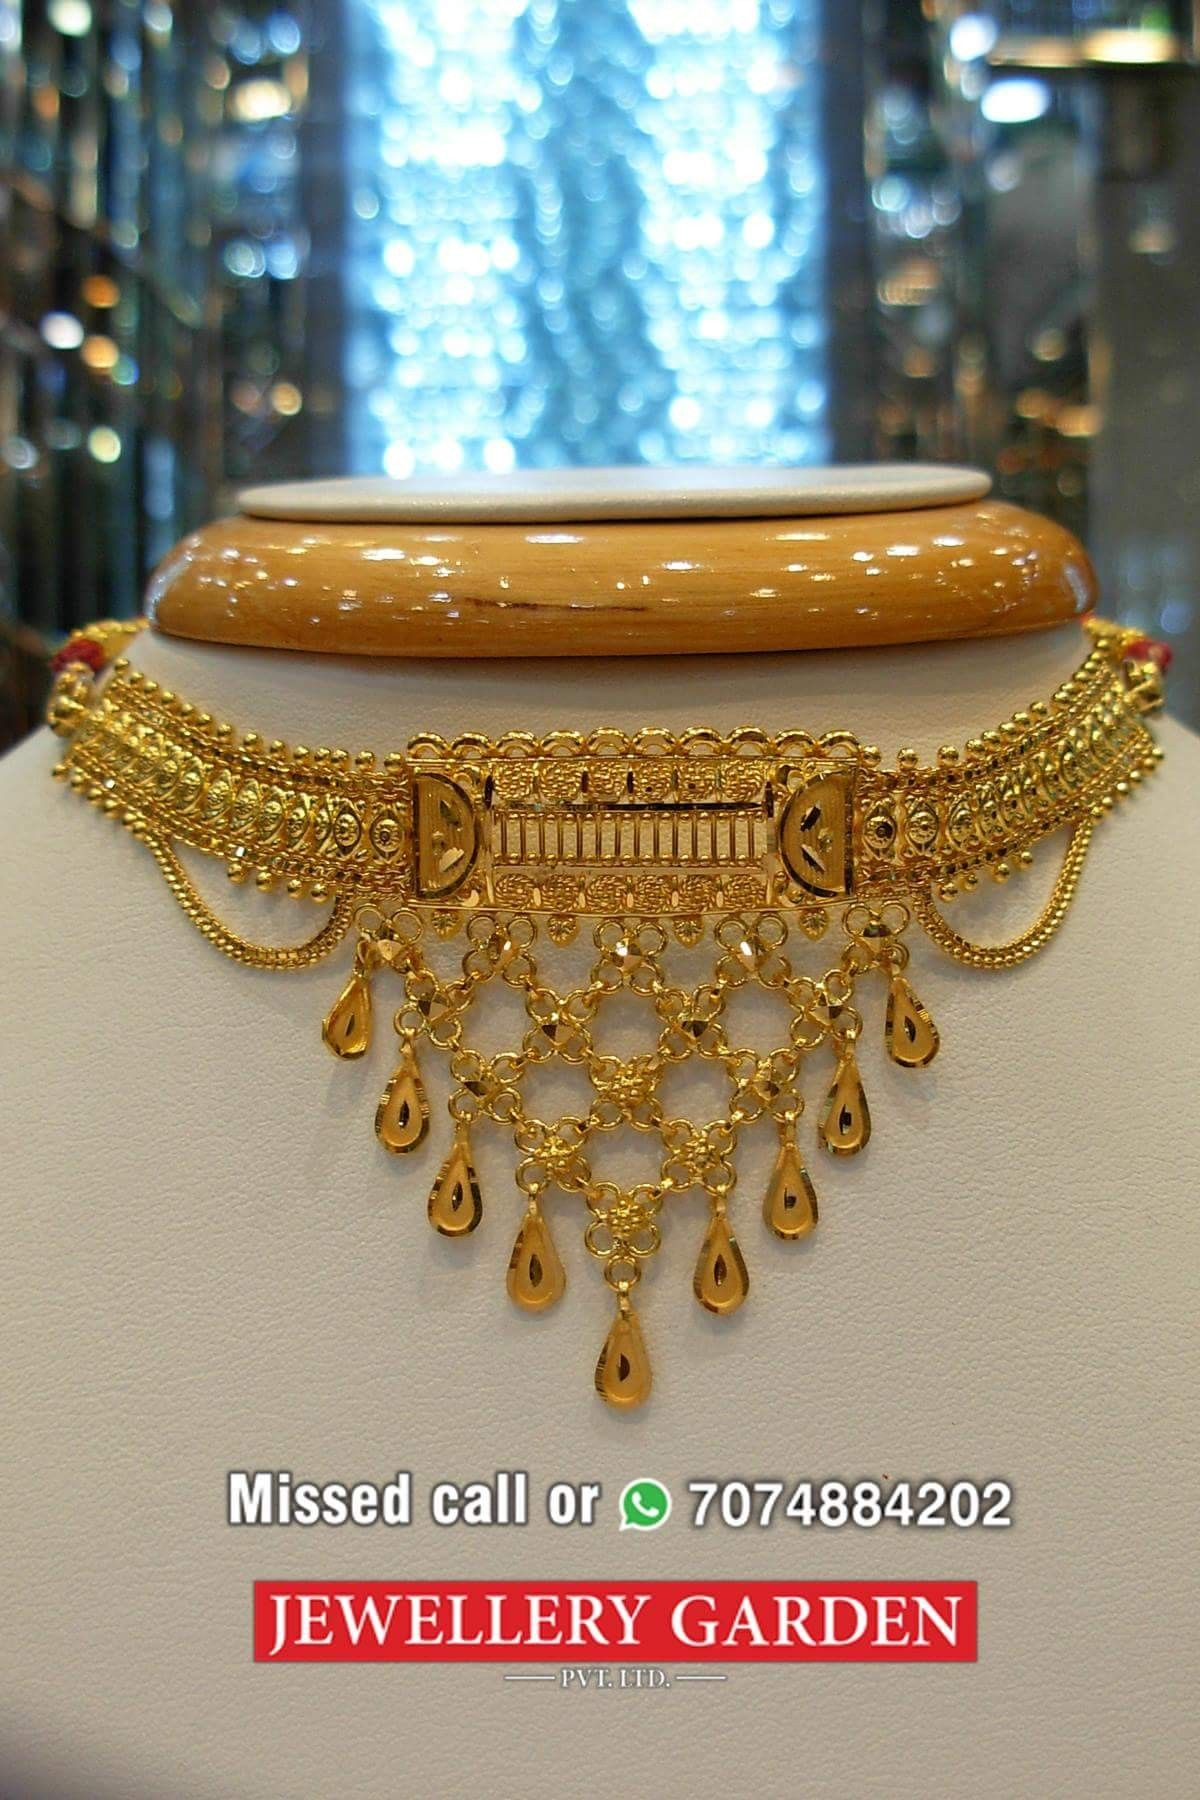 Pin by meena soni on jwelery pinterest gold jewellery gold and